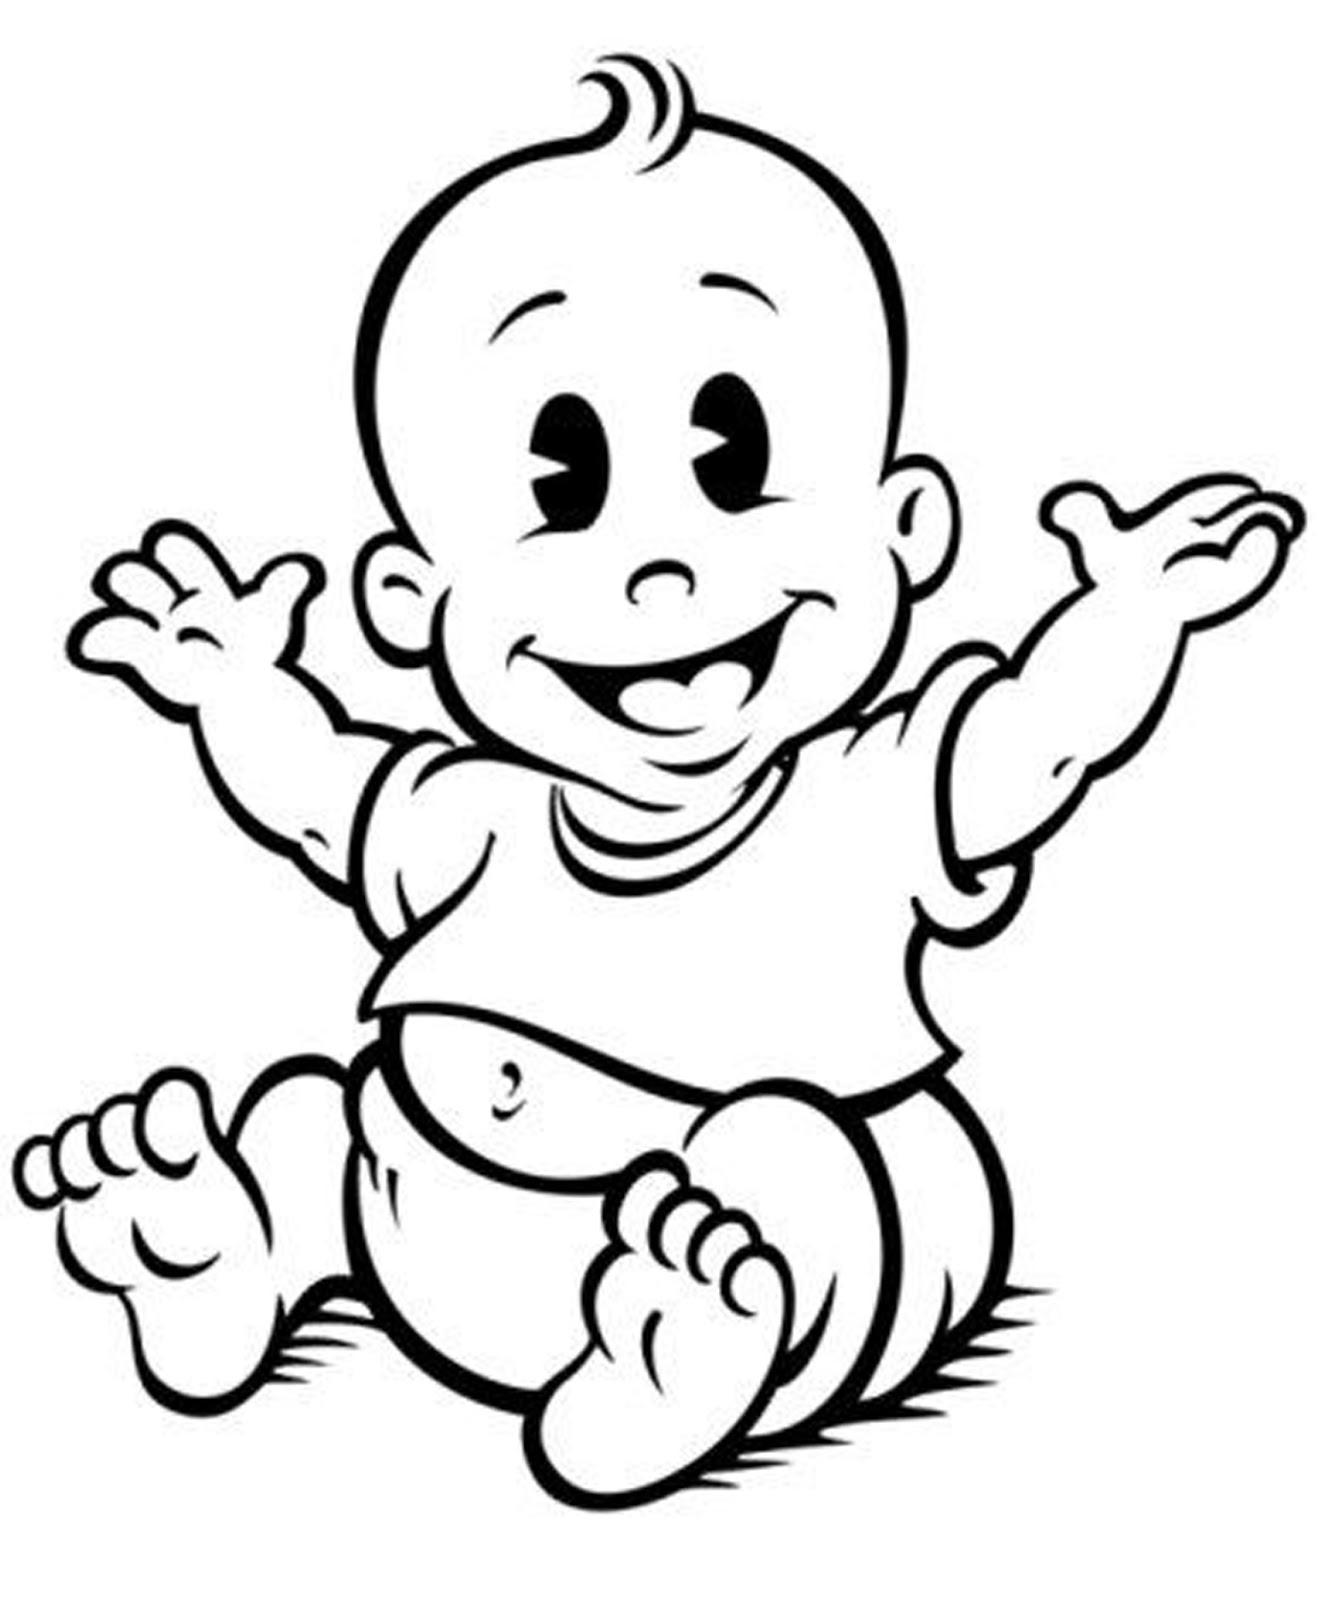 Baby Clipart Black And White-Baby clipart black and white-9